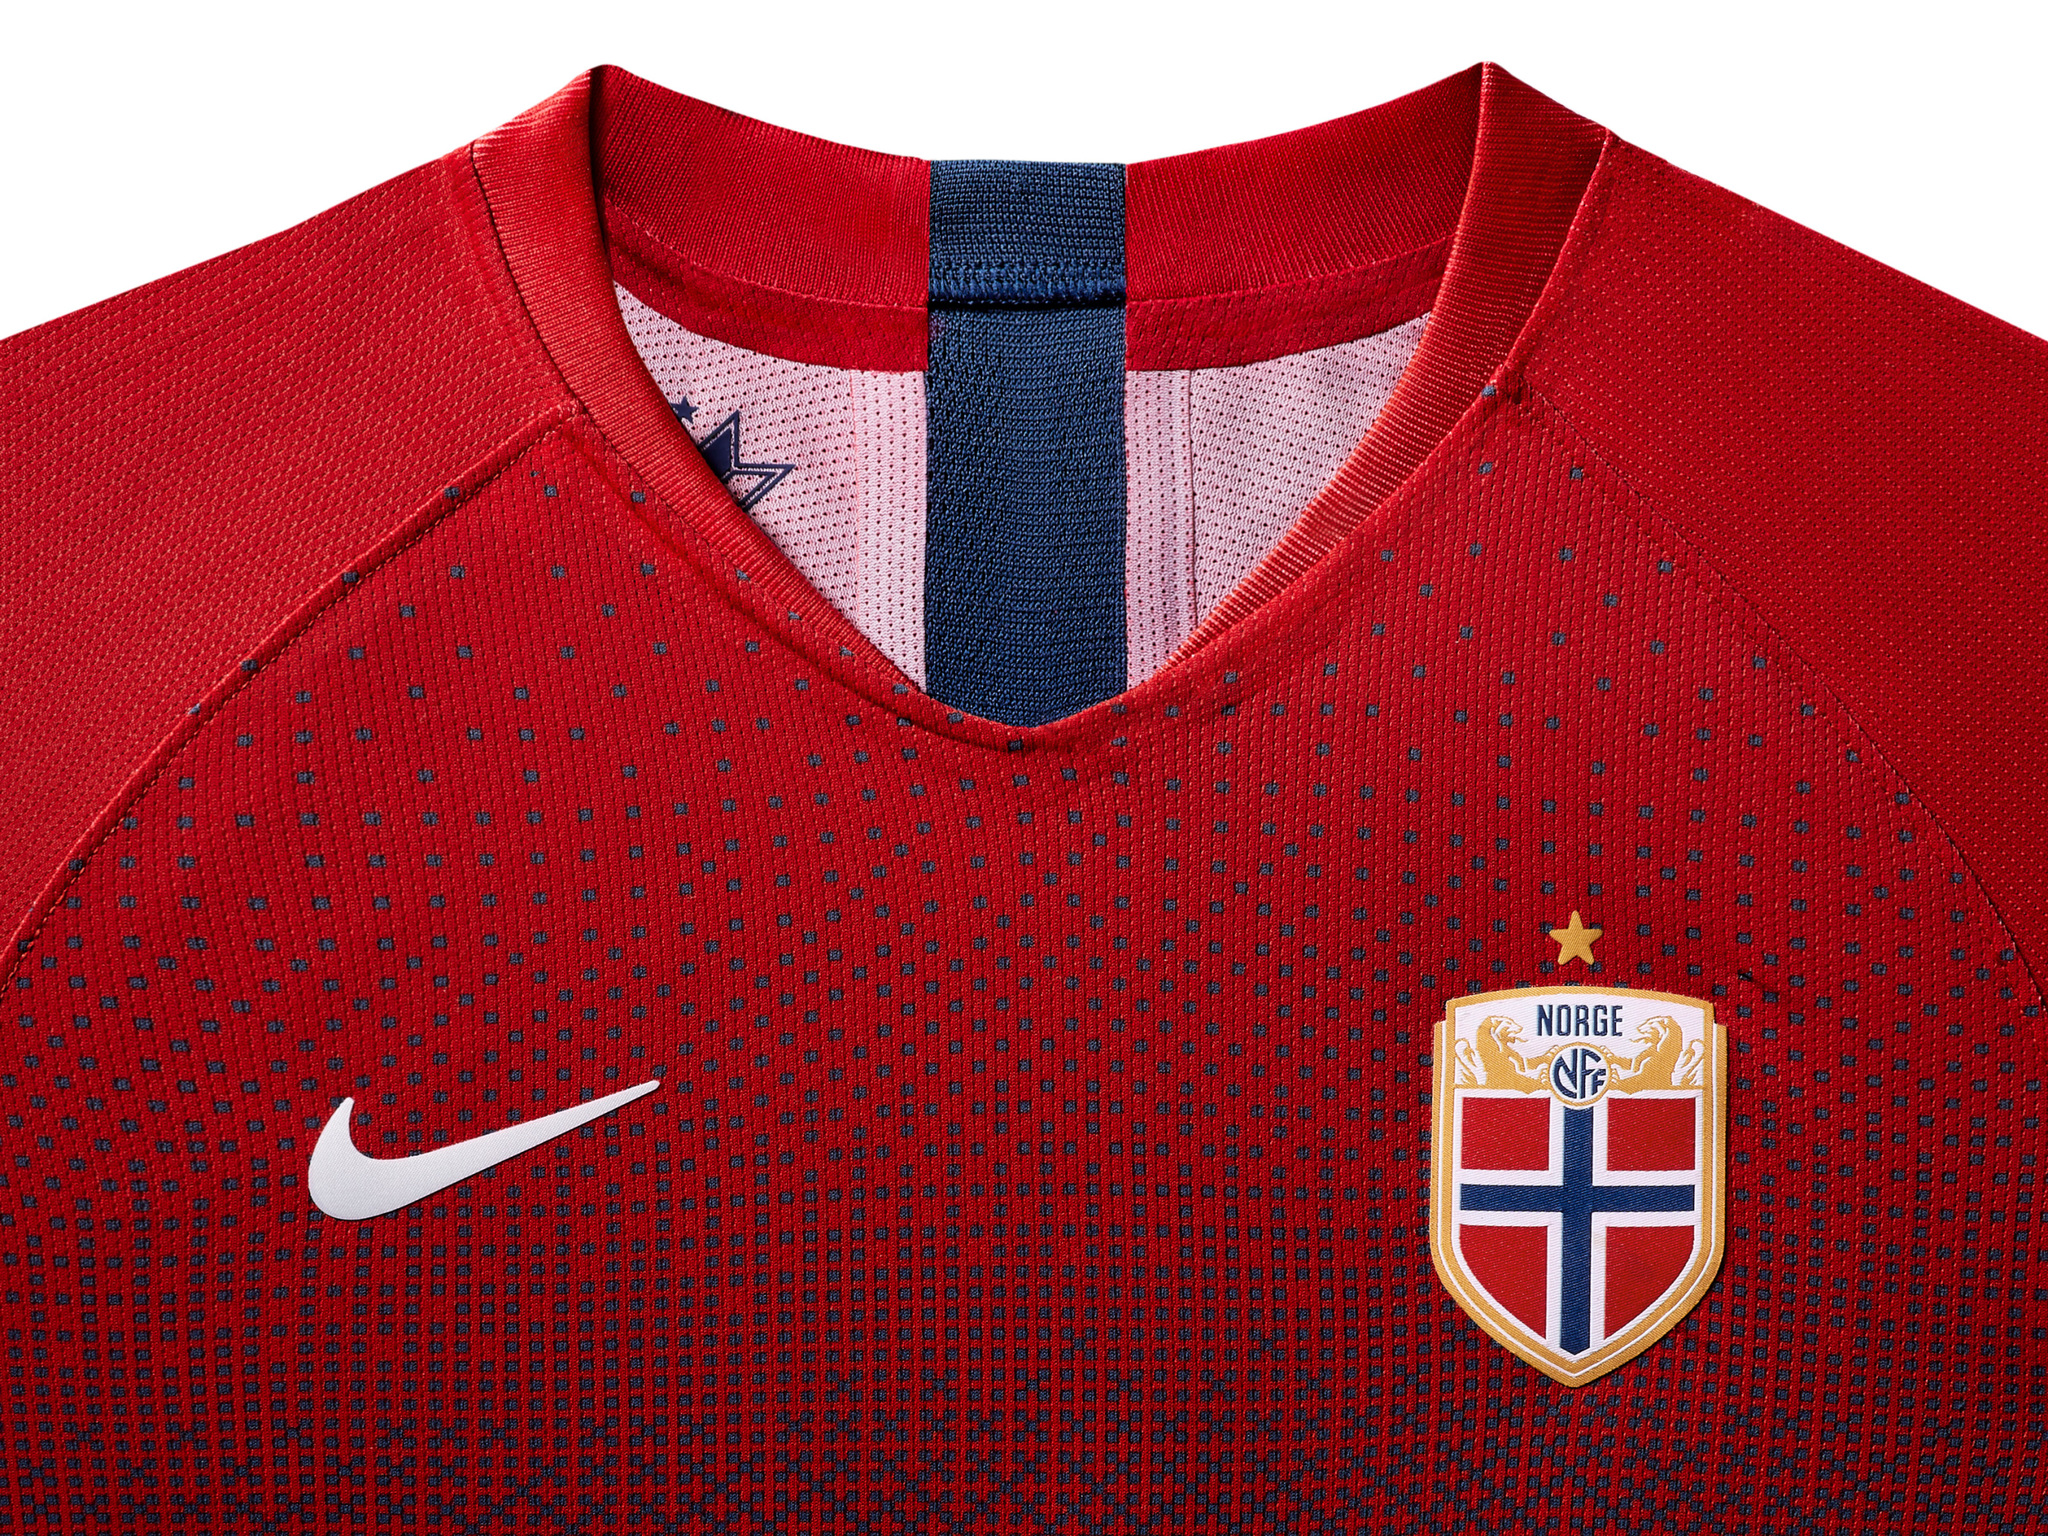 929c52608 It s the first time ever that national kits have been designed exclusively  for women s football teams